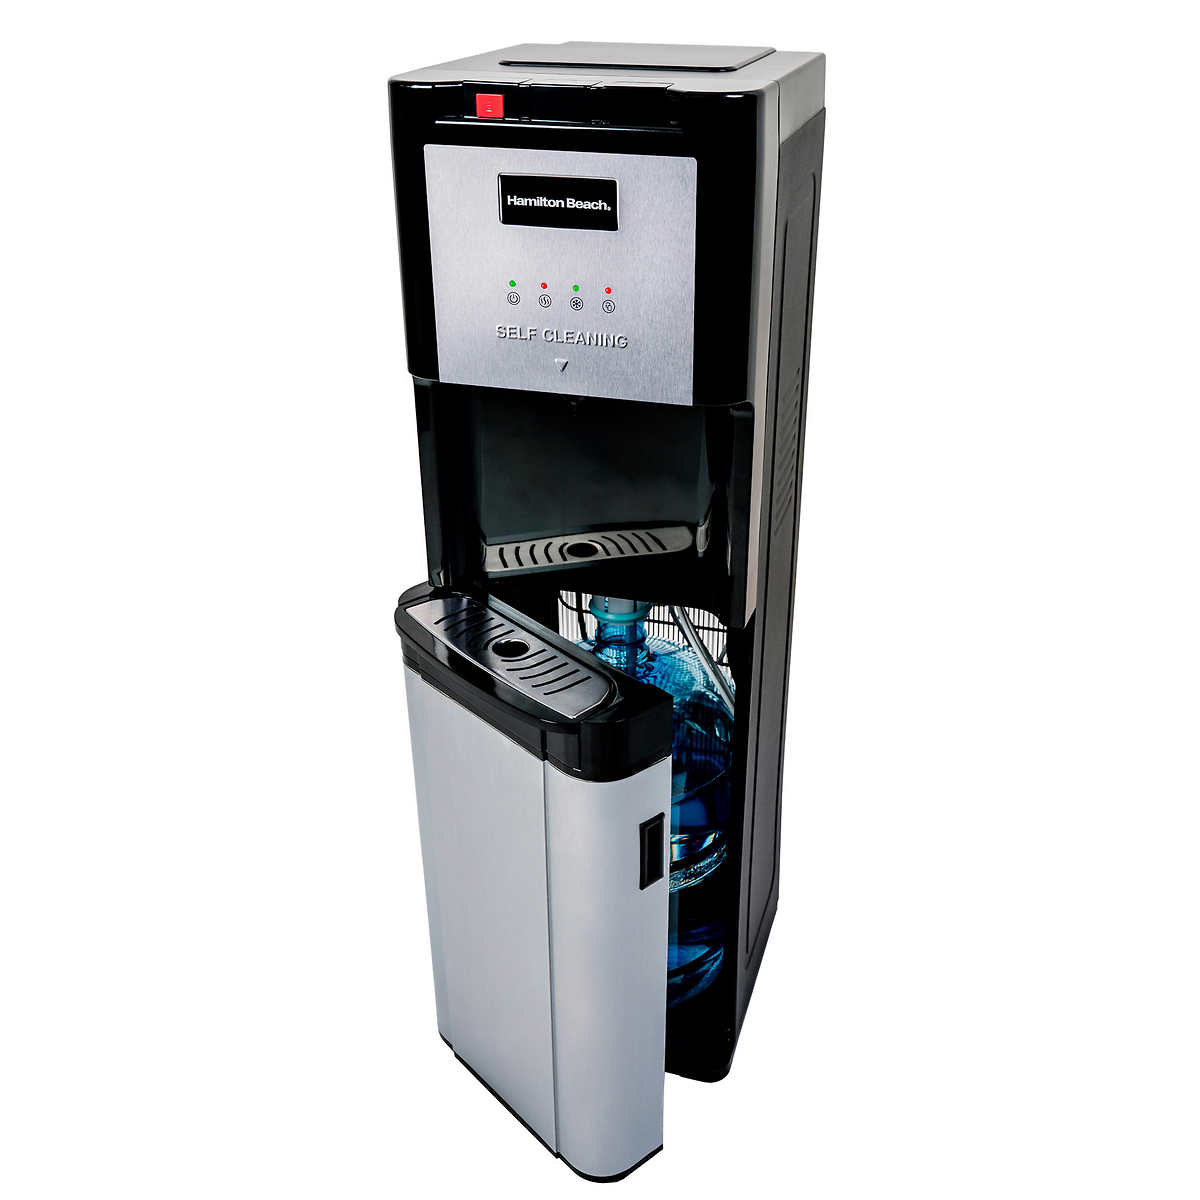 Whirlpool white ice costco - Hamilton Beach Self Cleaning Stainless Steel Bottom Load Water Cooler